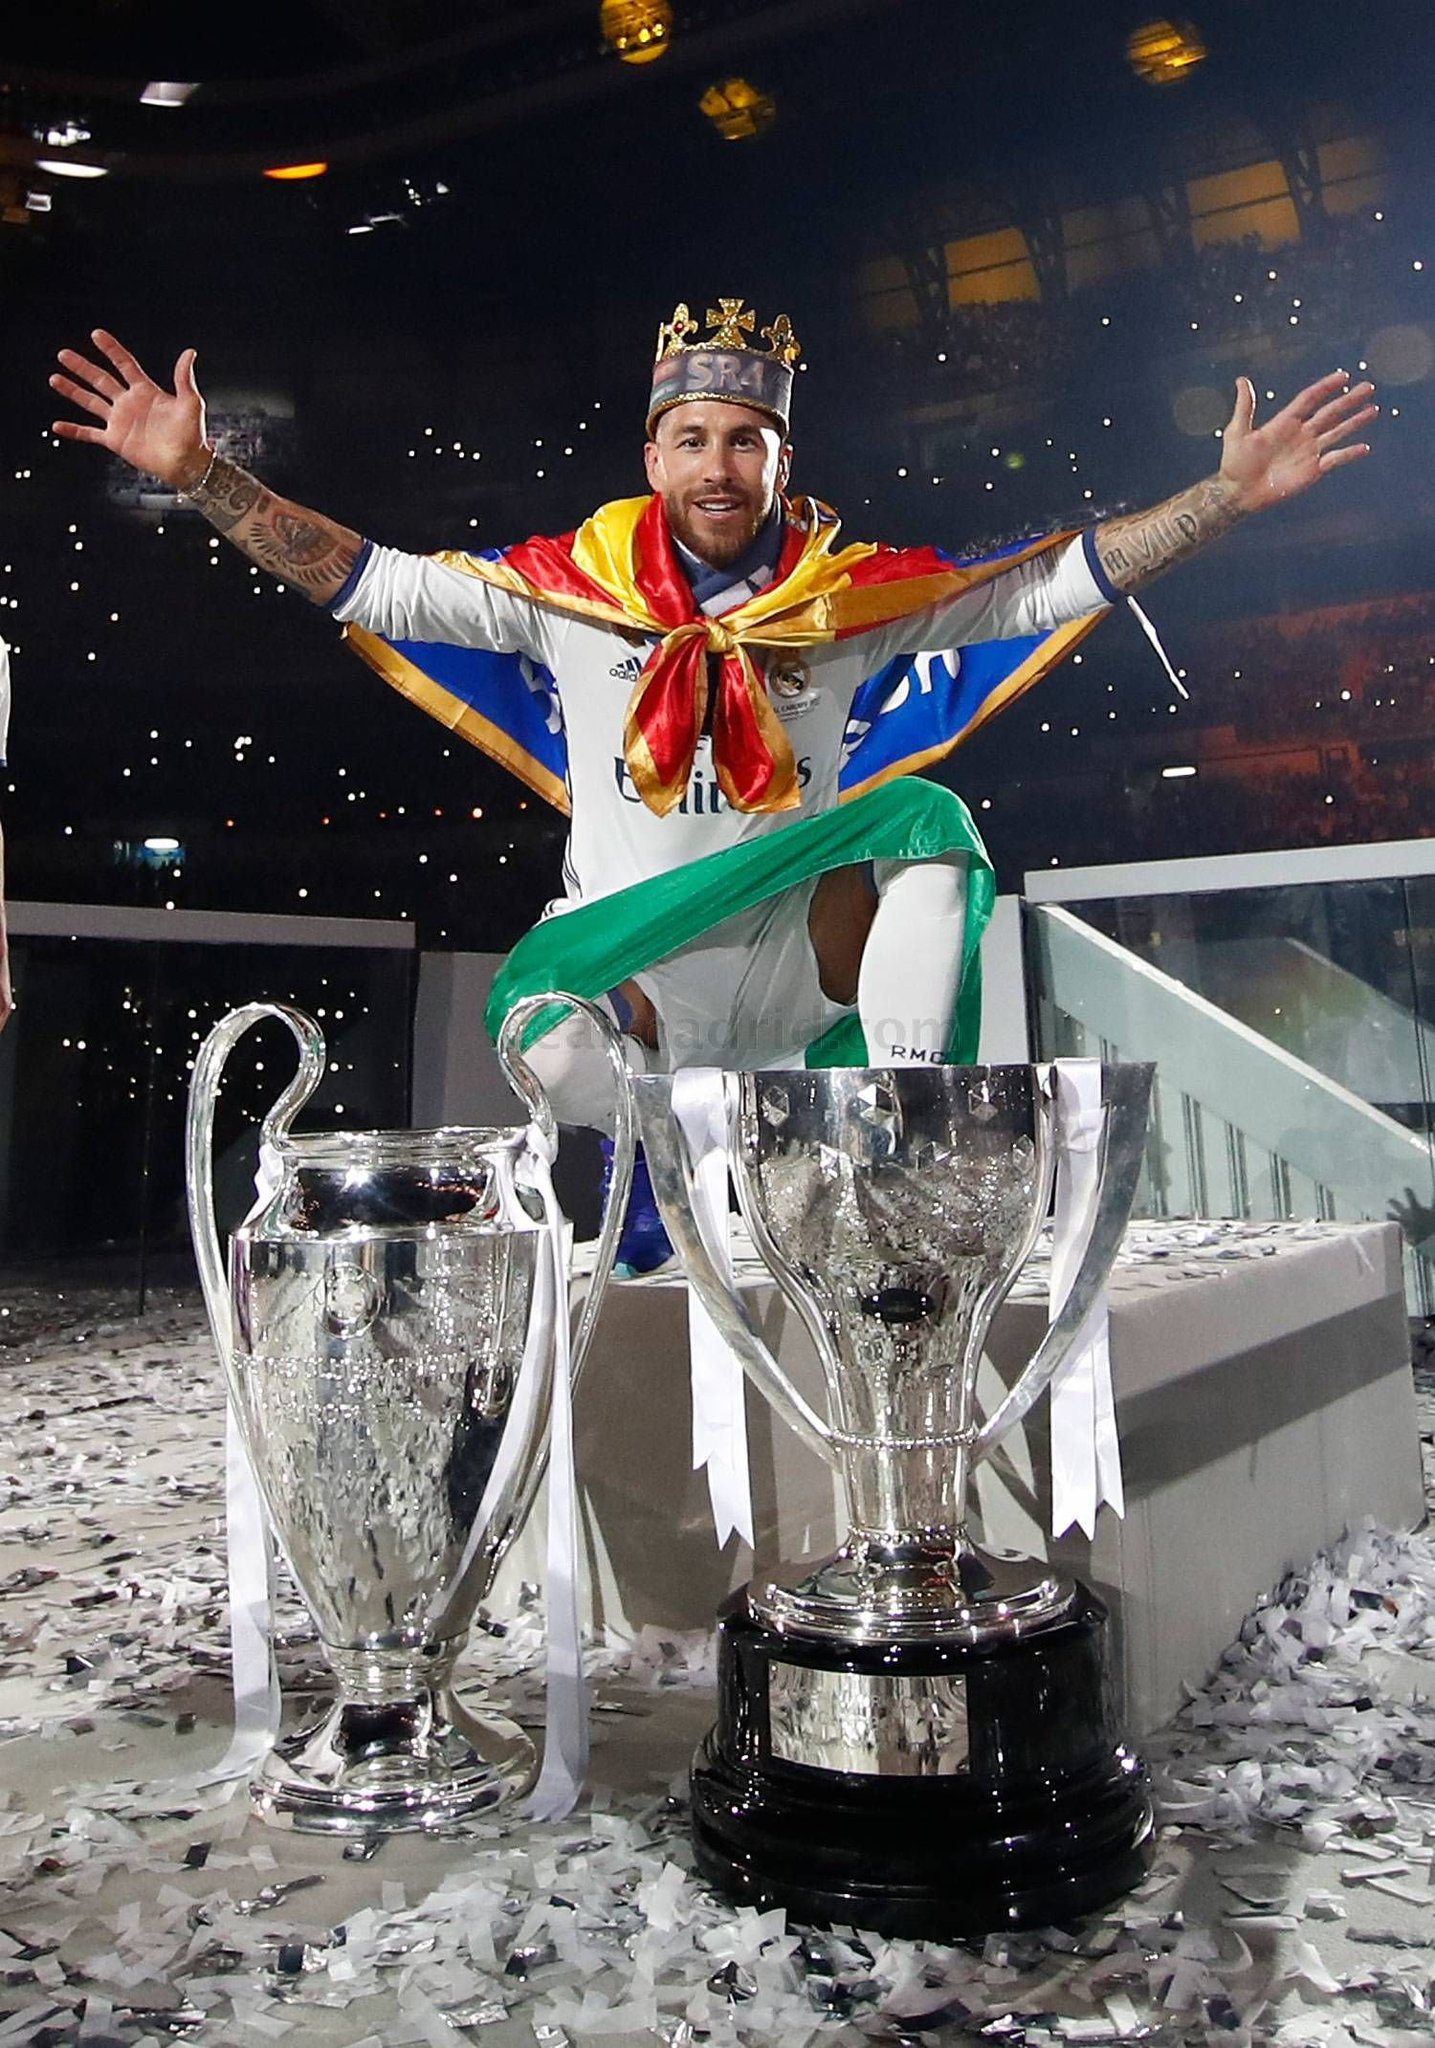 OFFICIAL: Ramos To Leave Real Madrid After 16 Years